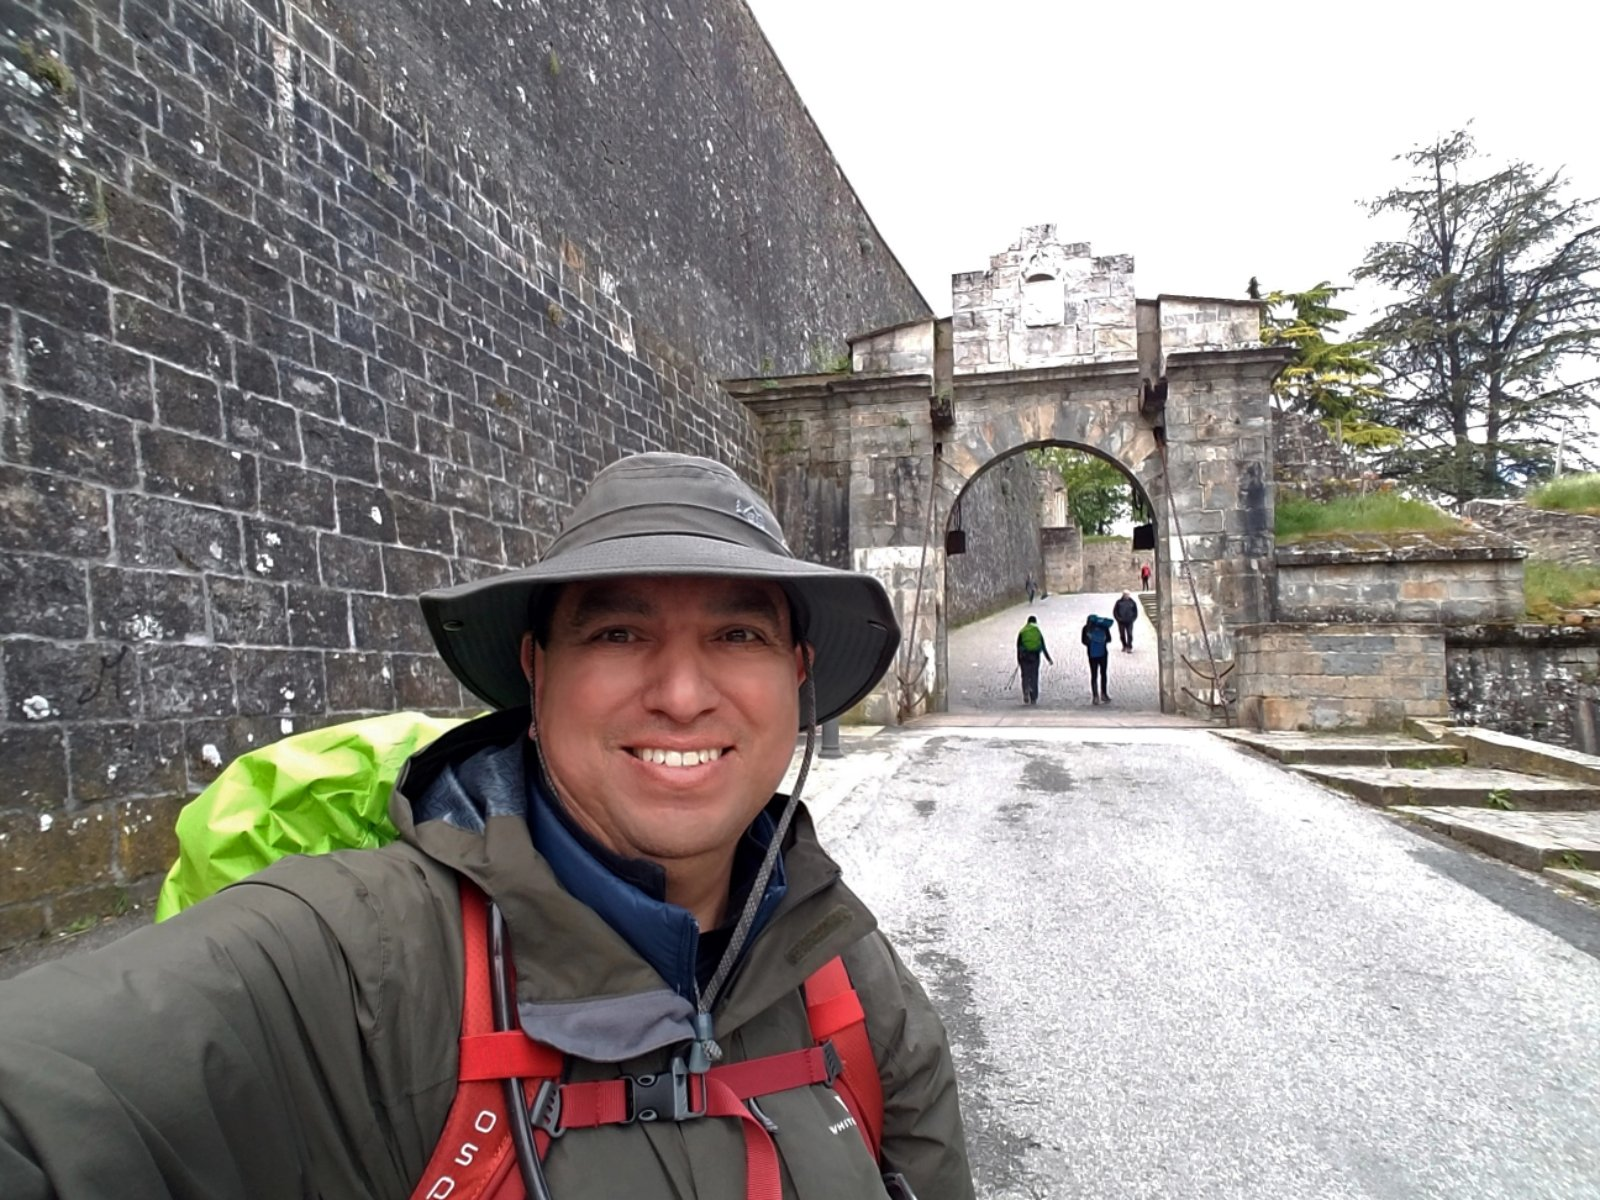 Joe Florez in a town while hiking the Camino